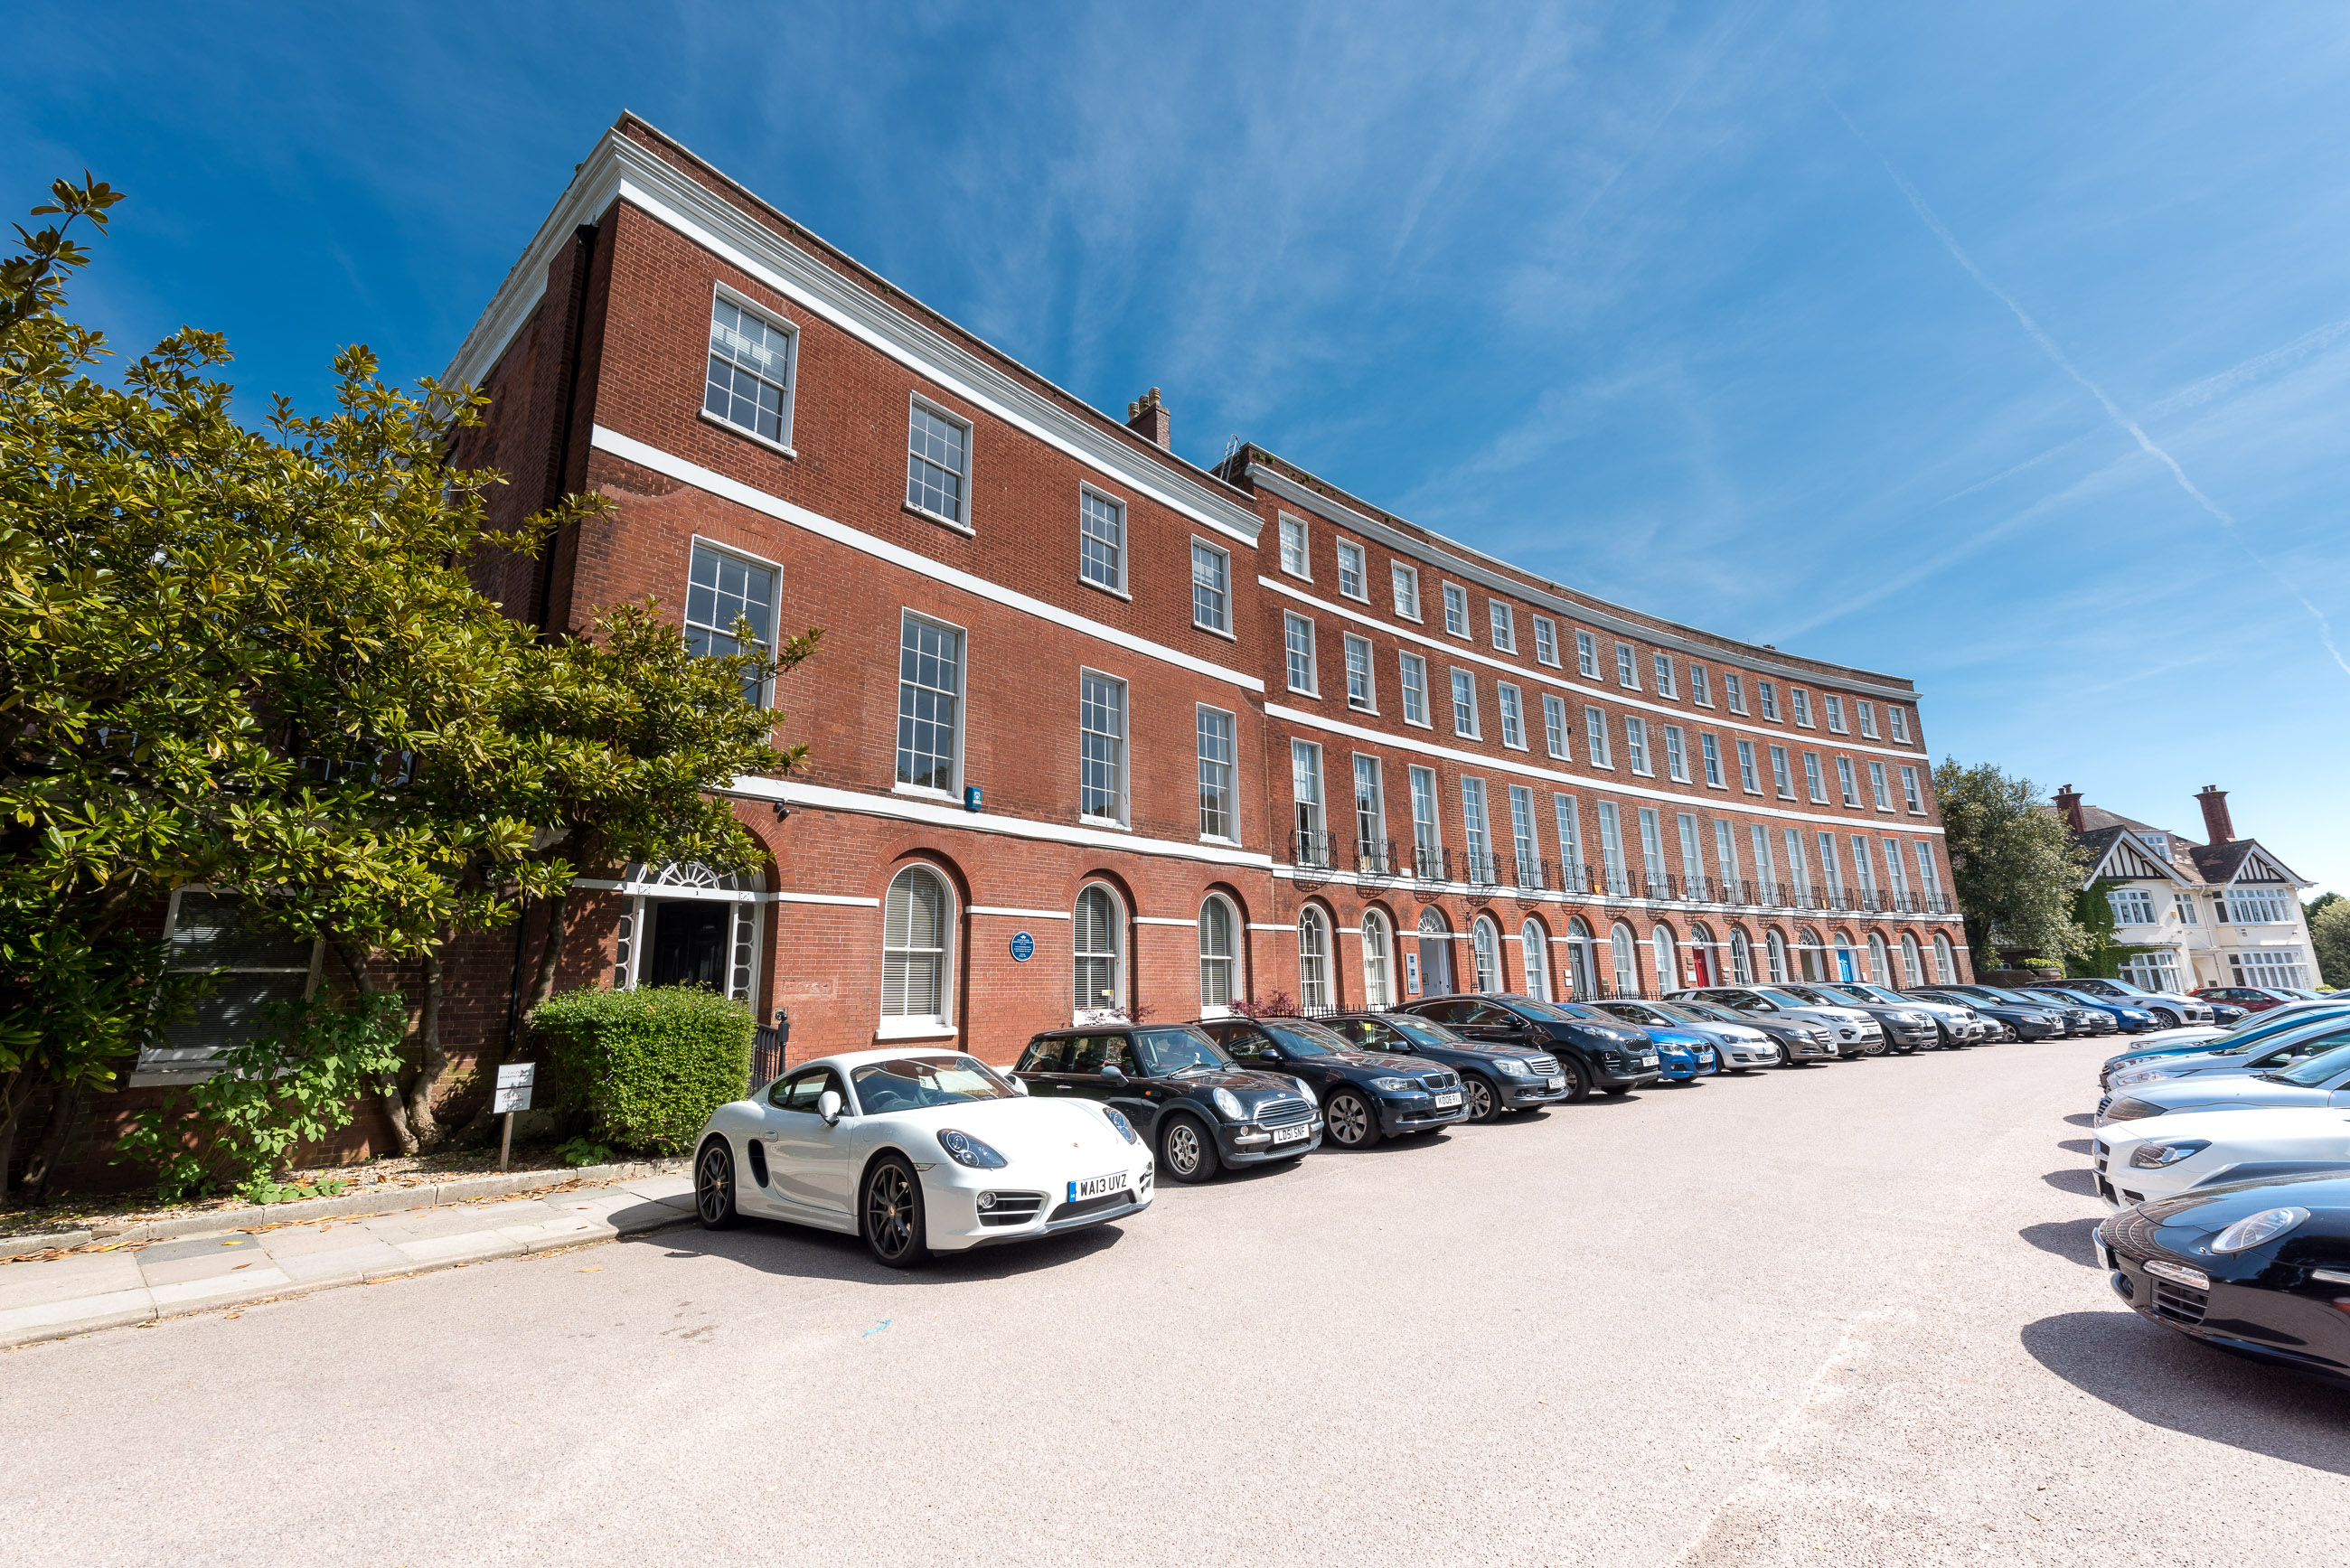 Offices at No1 Exeter serviced office space